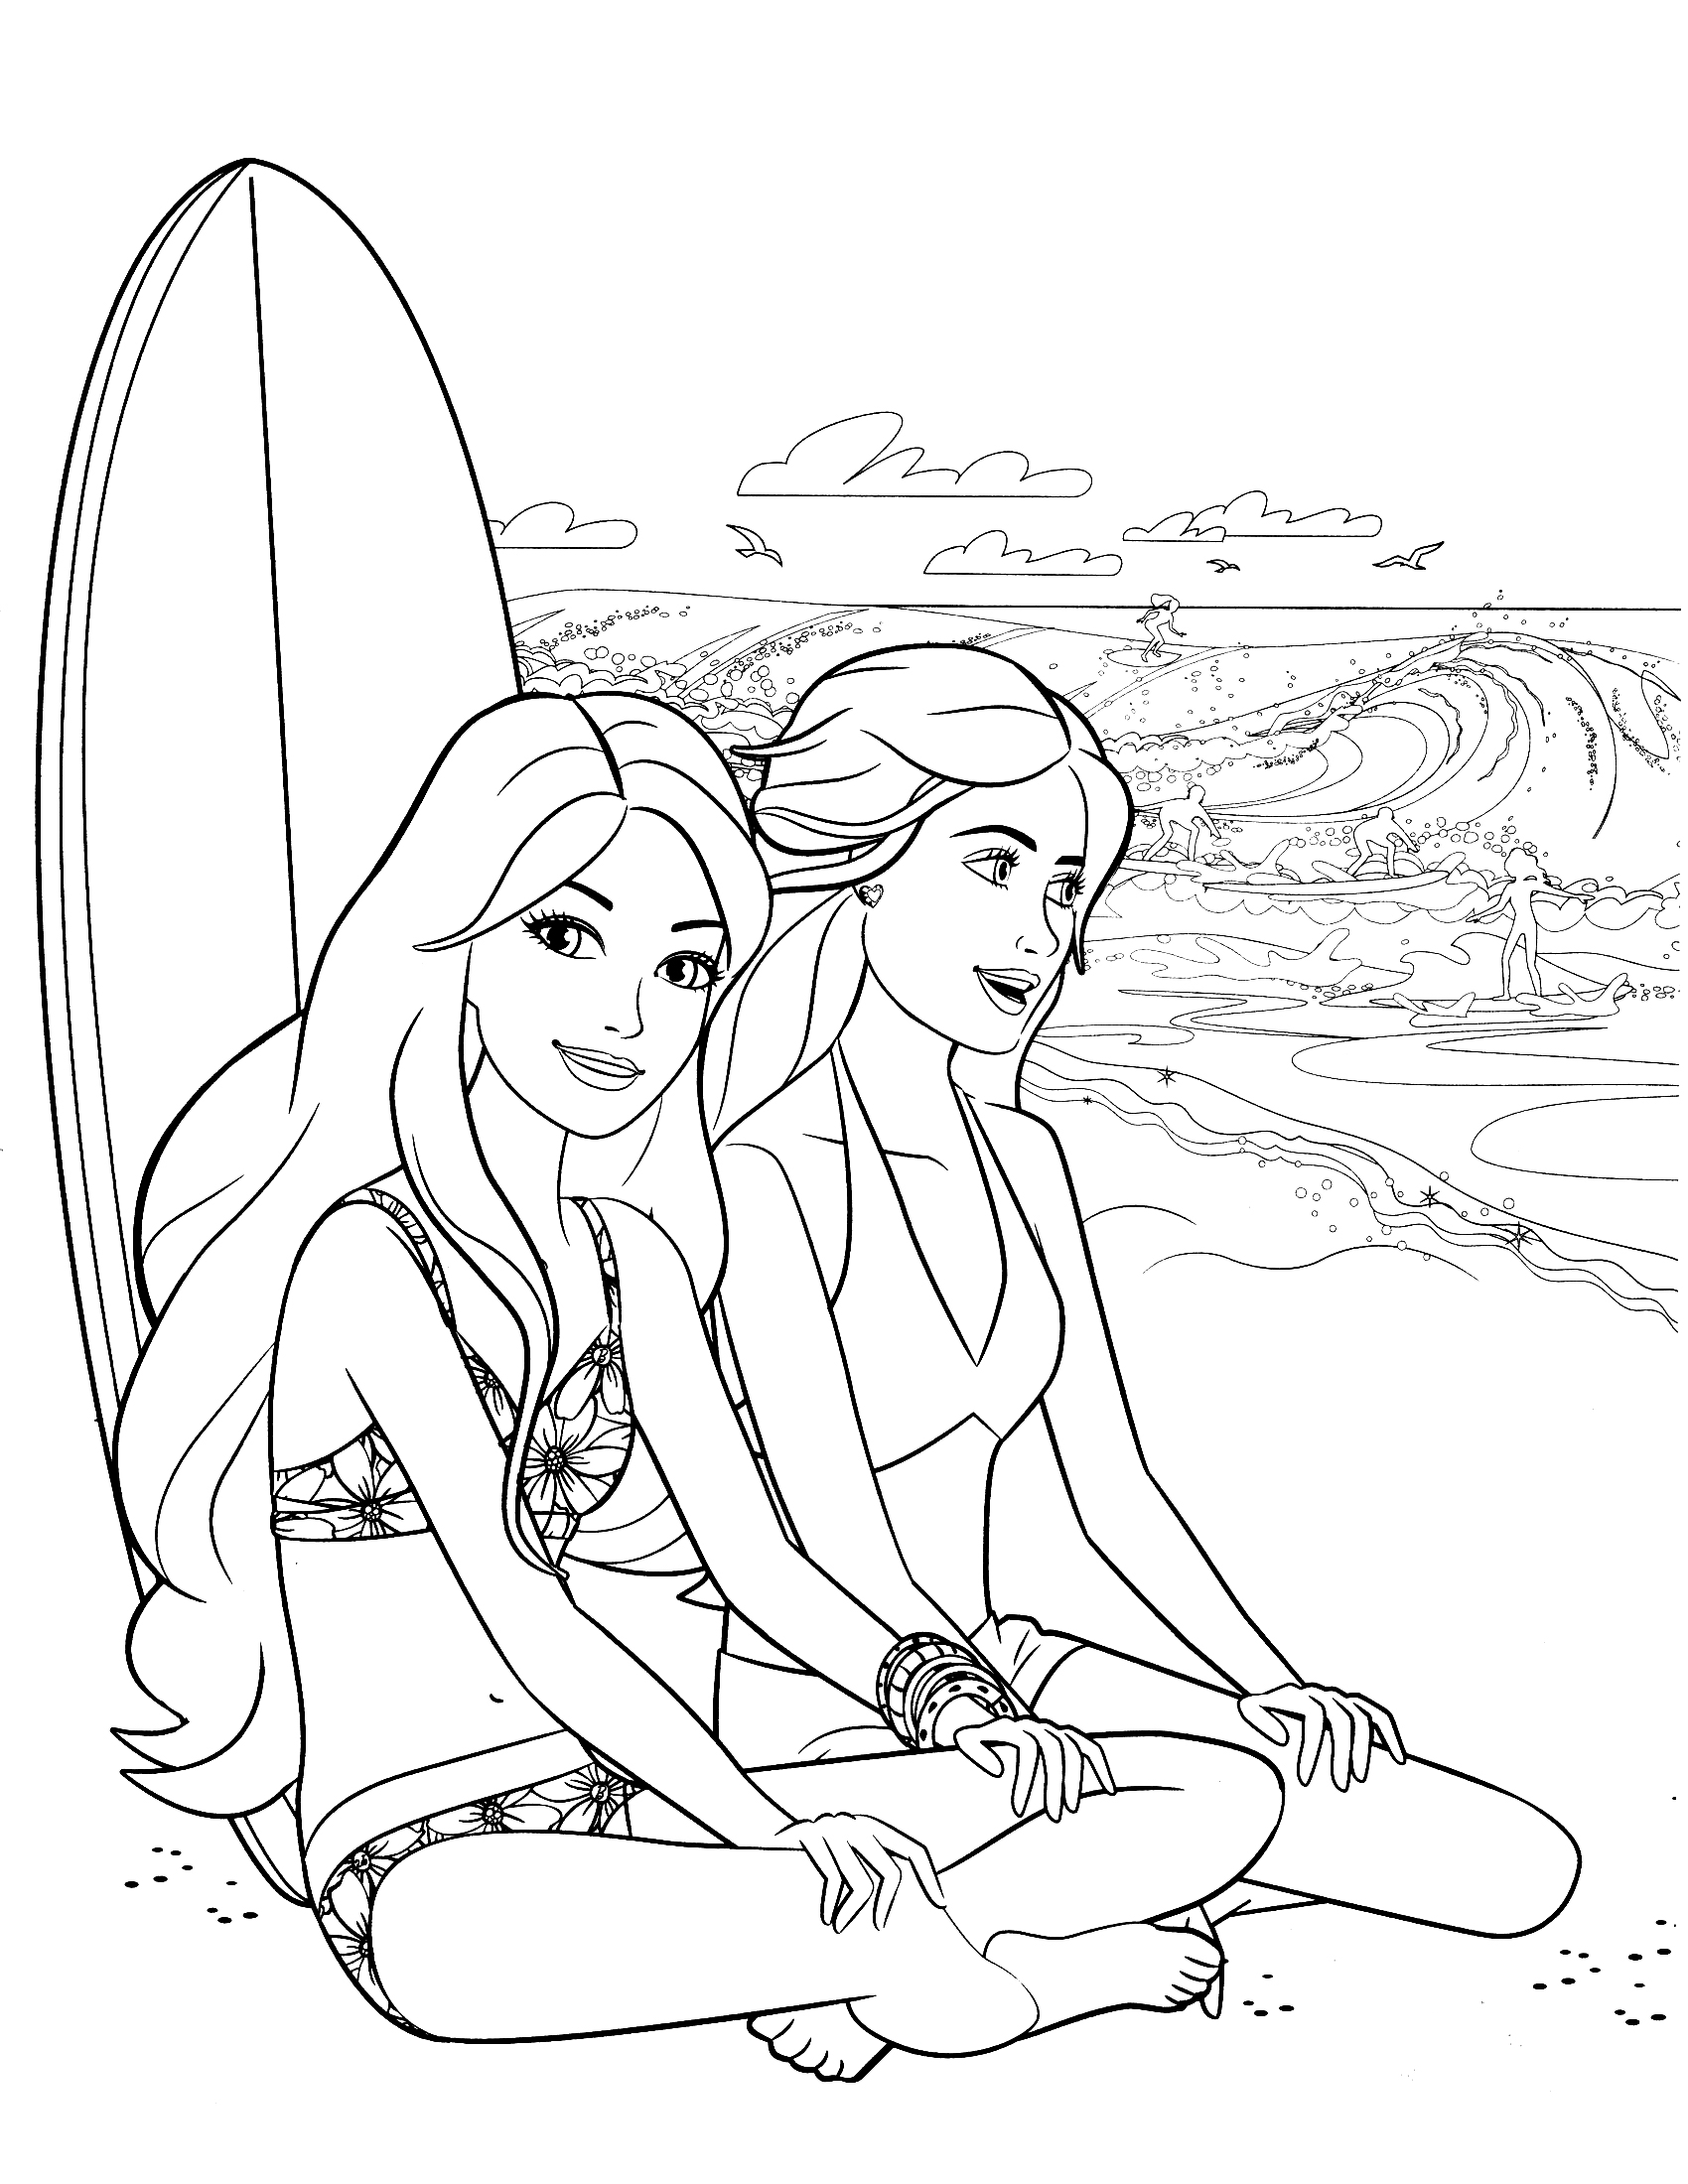 barbie print out coloring pages - photo#18